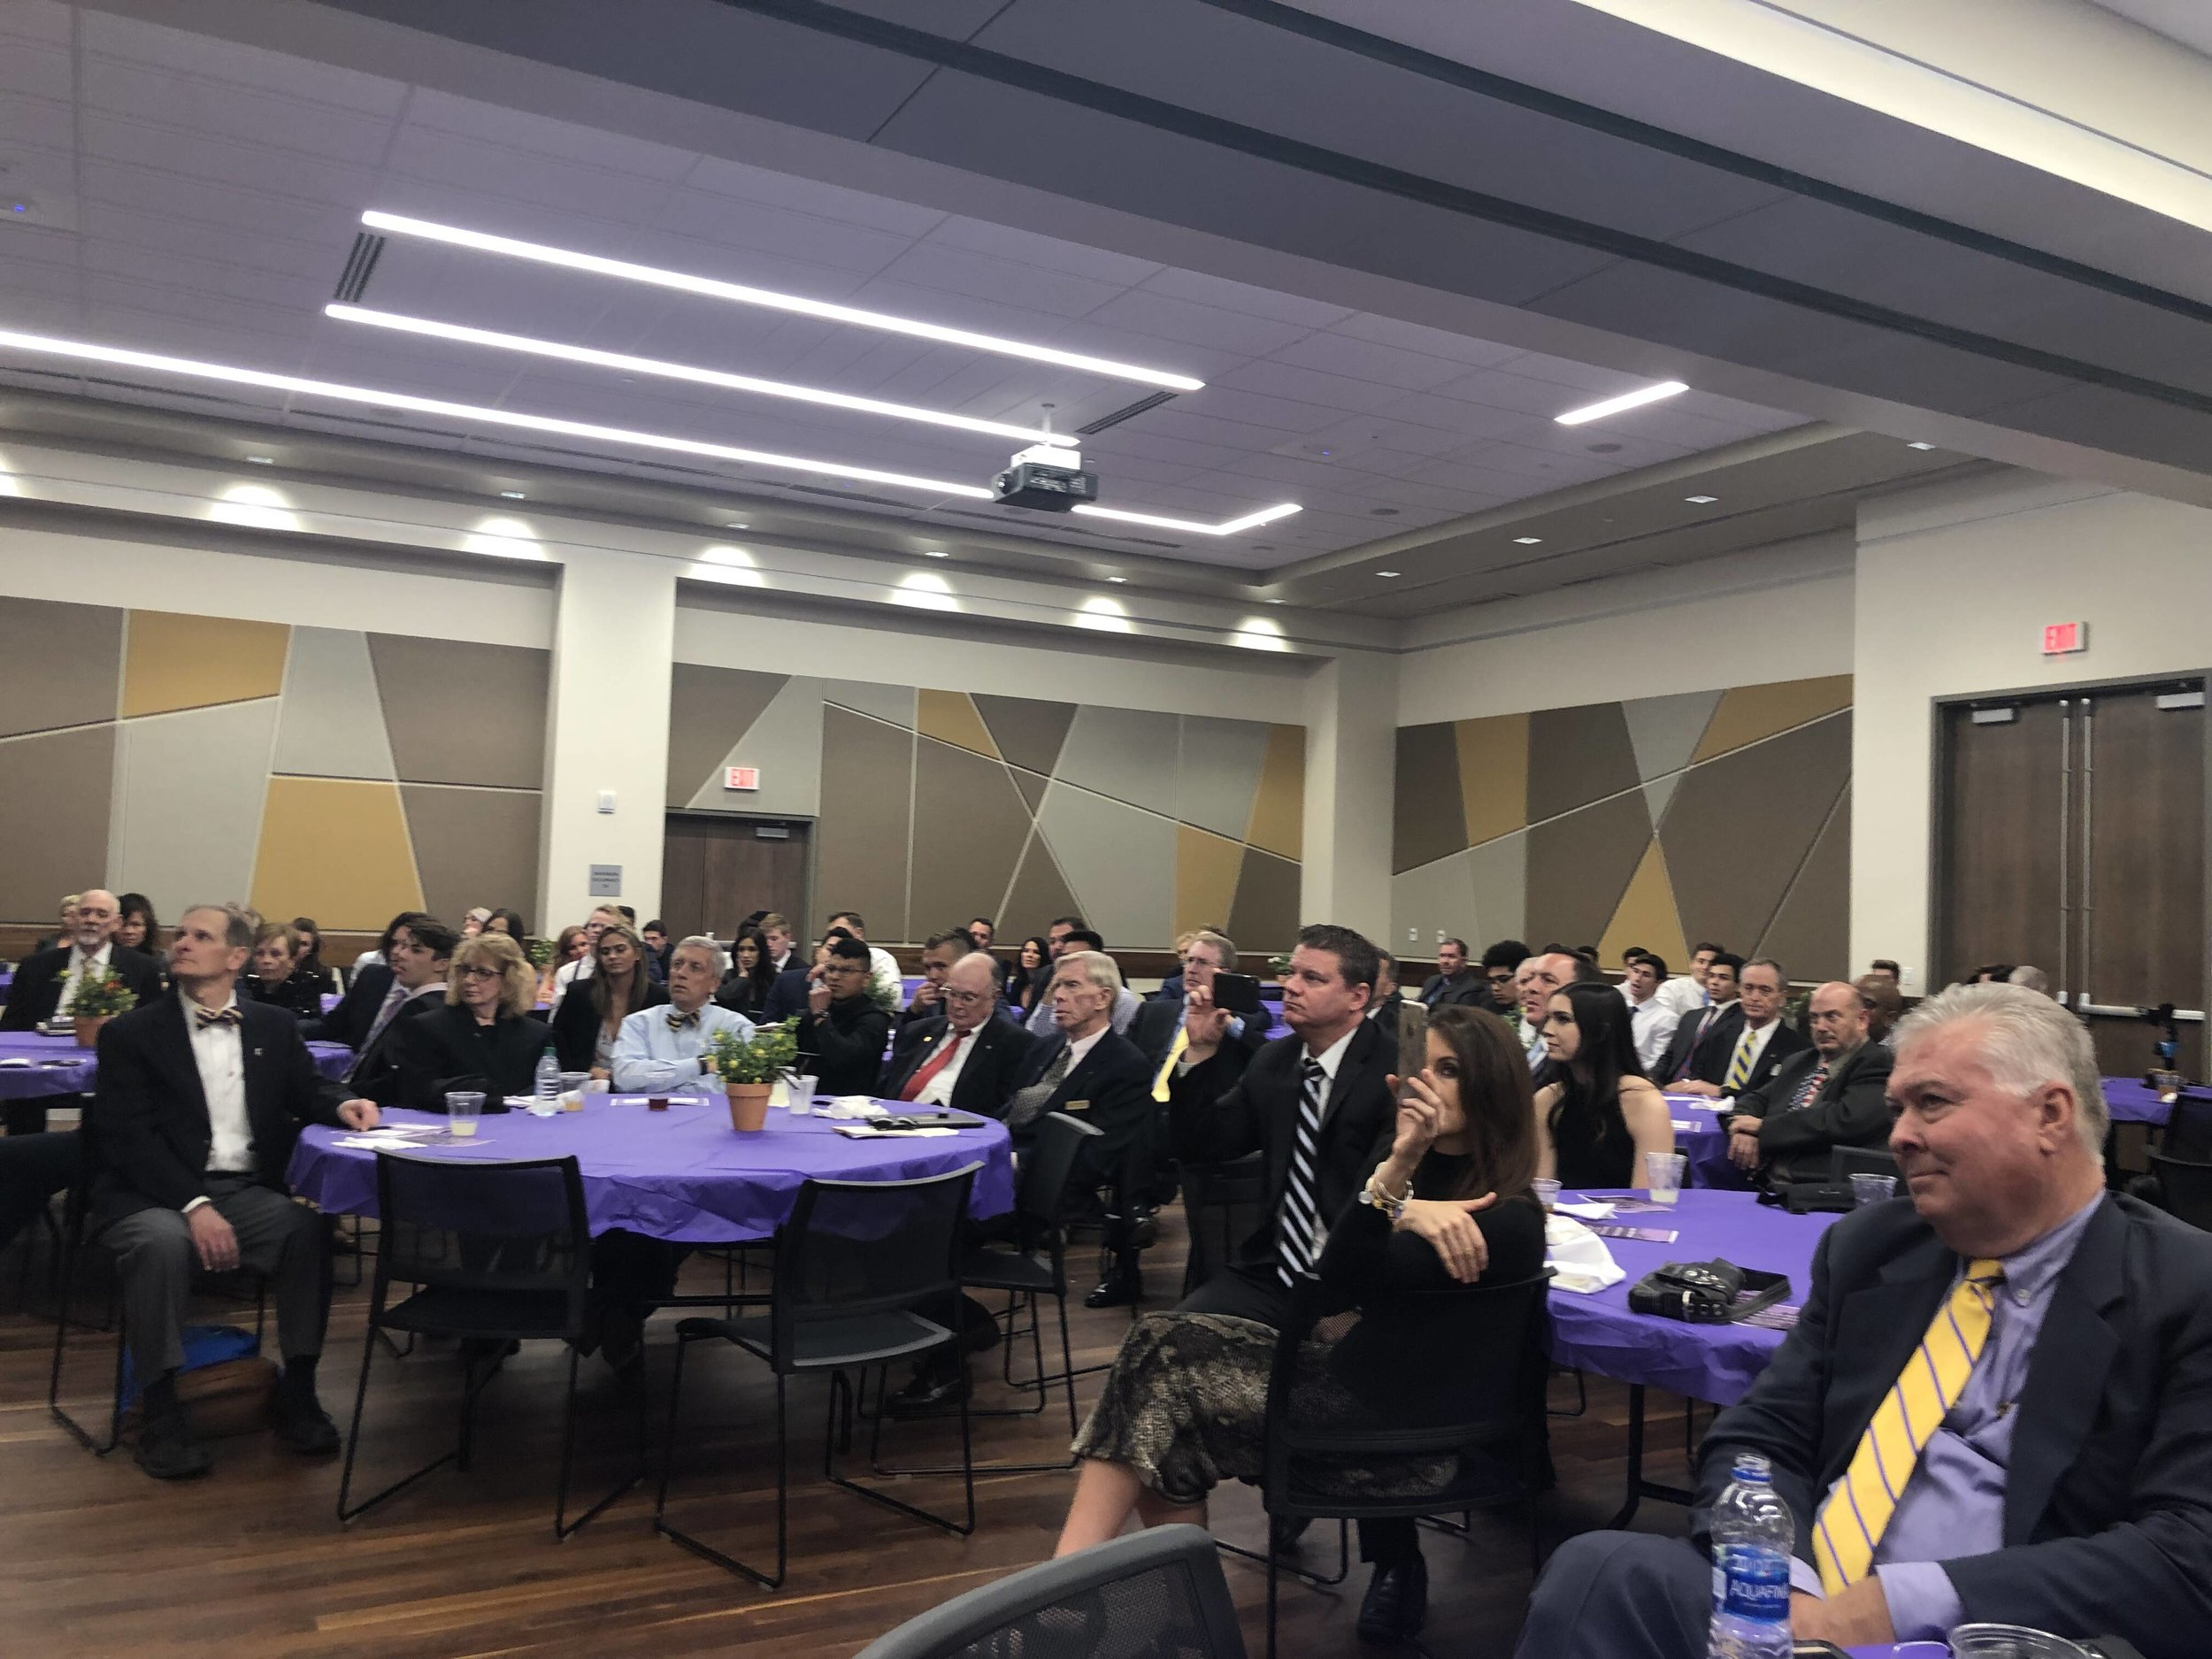 A banquet style dinner for 180 guests and chapter initiates at Greek Leadership Village